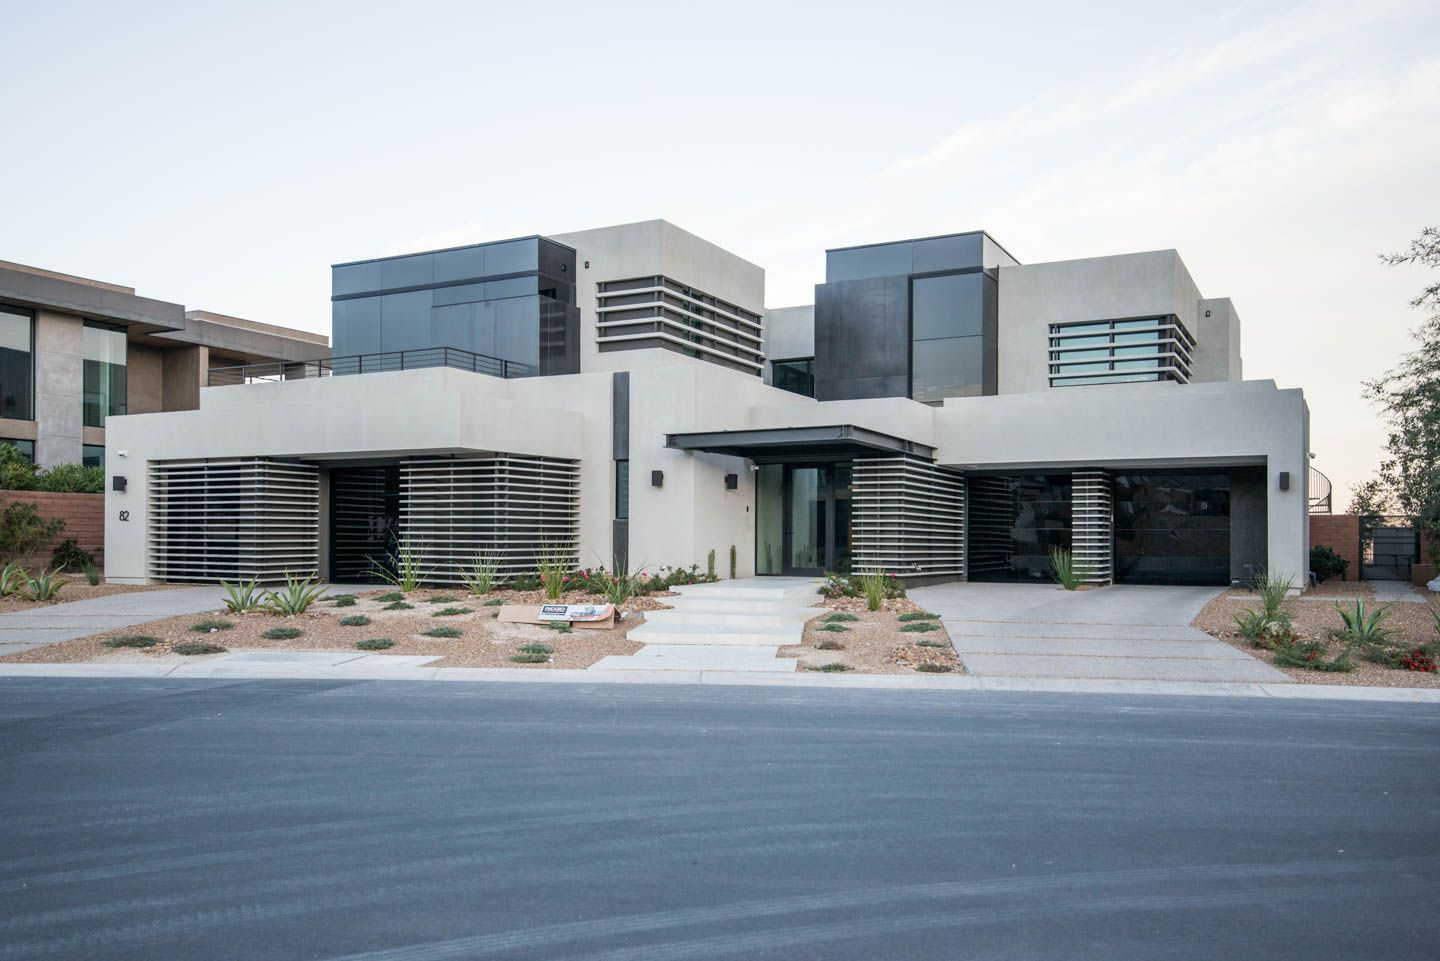 Model 8450 luminous glass garage doors on this very modern home model 8450 luminous glass garage doors on this very modern home in las vegas eventelaan Image collections